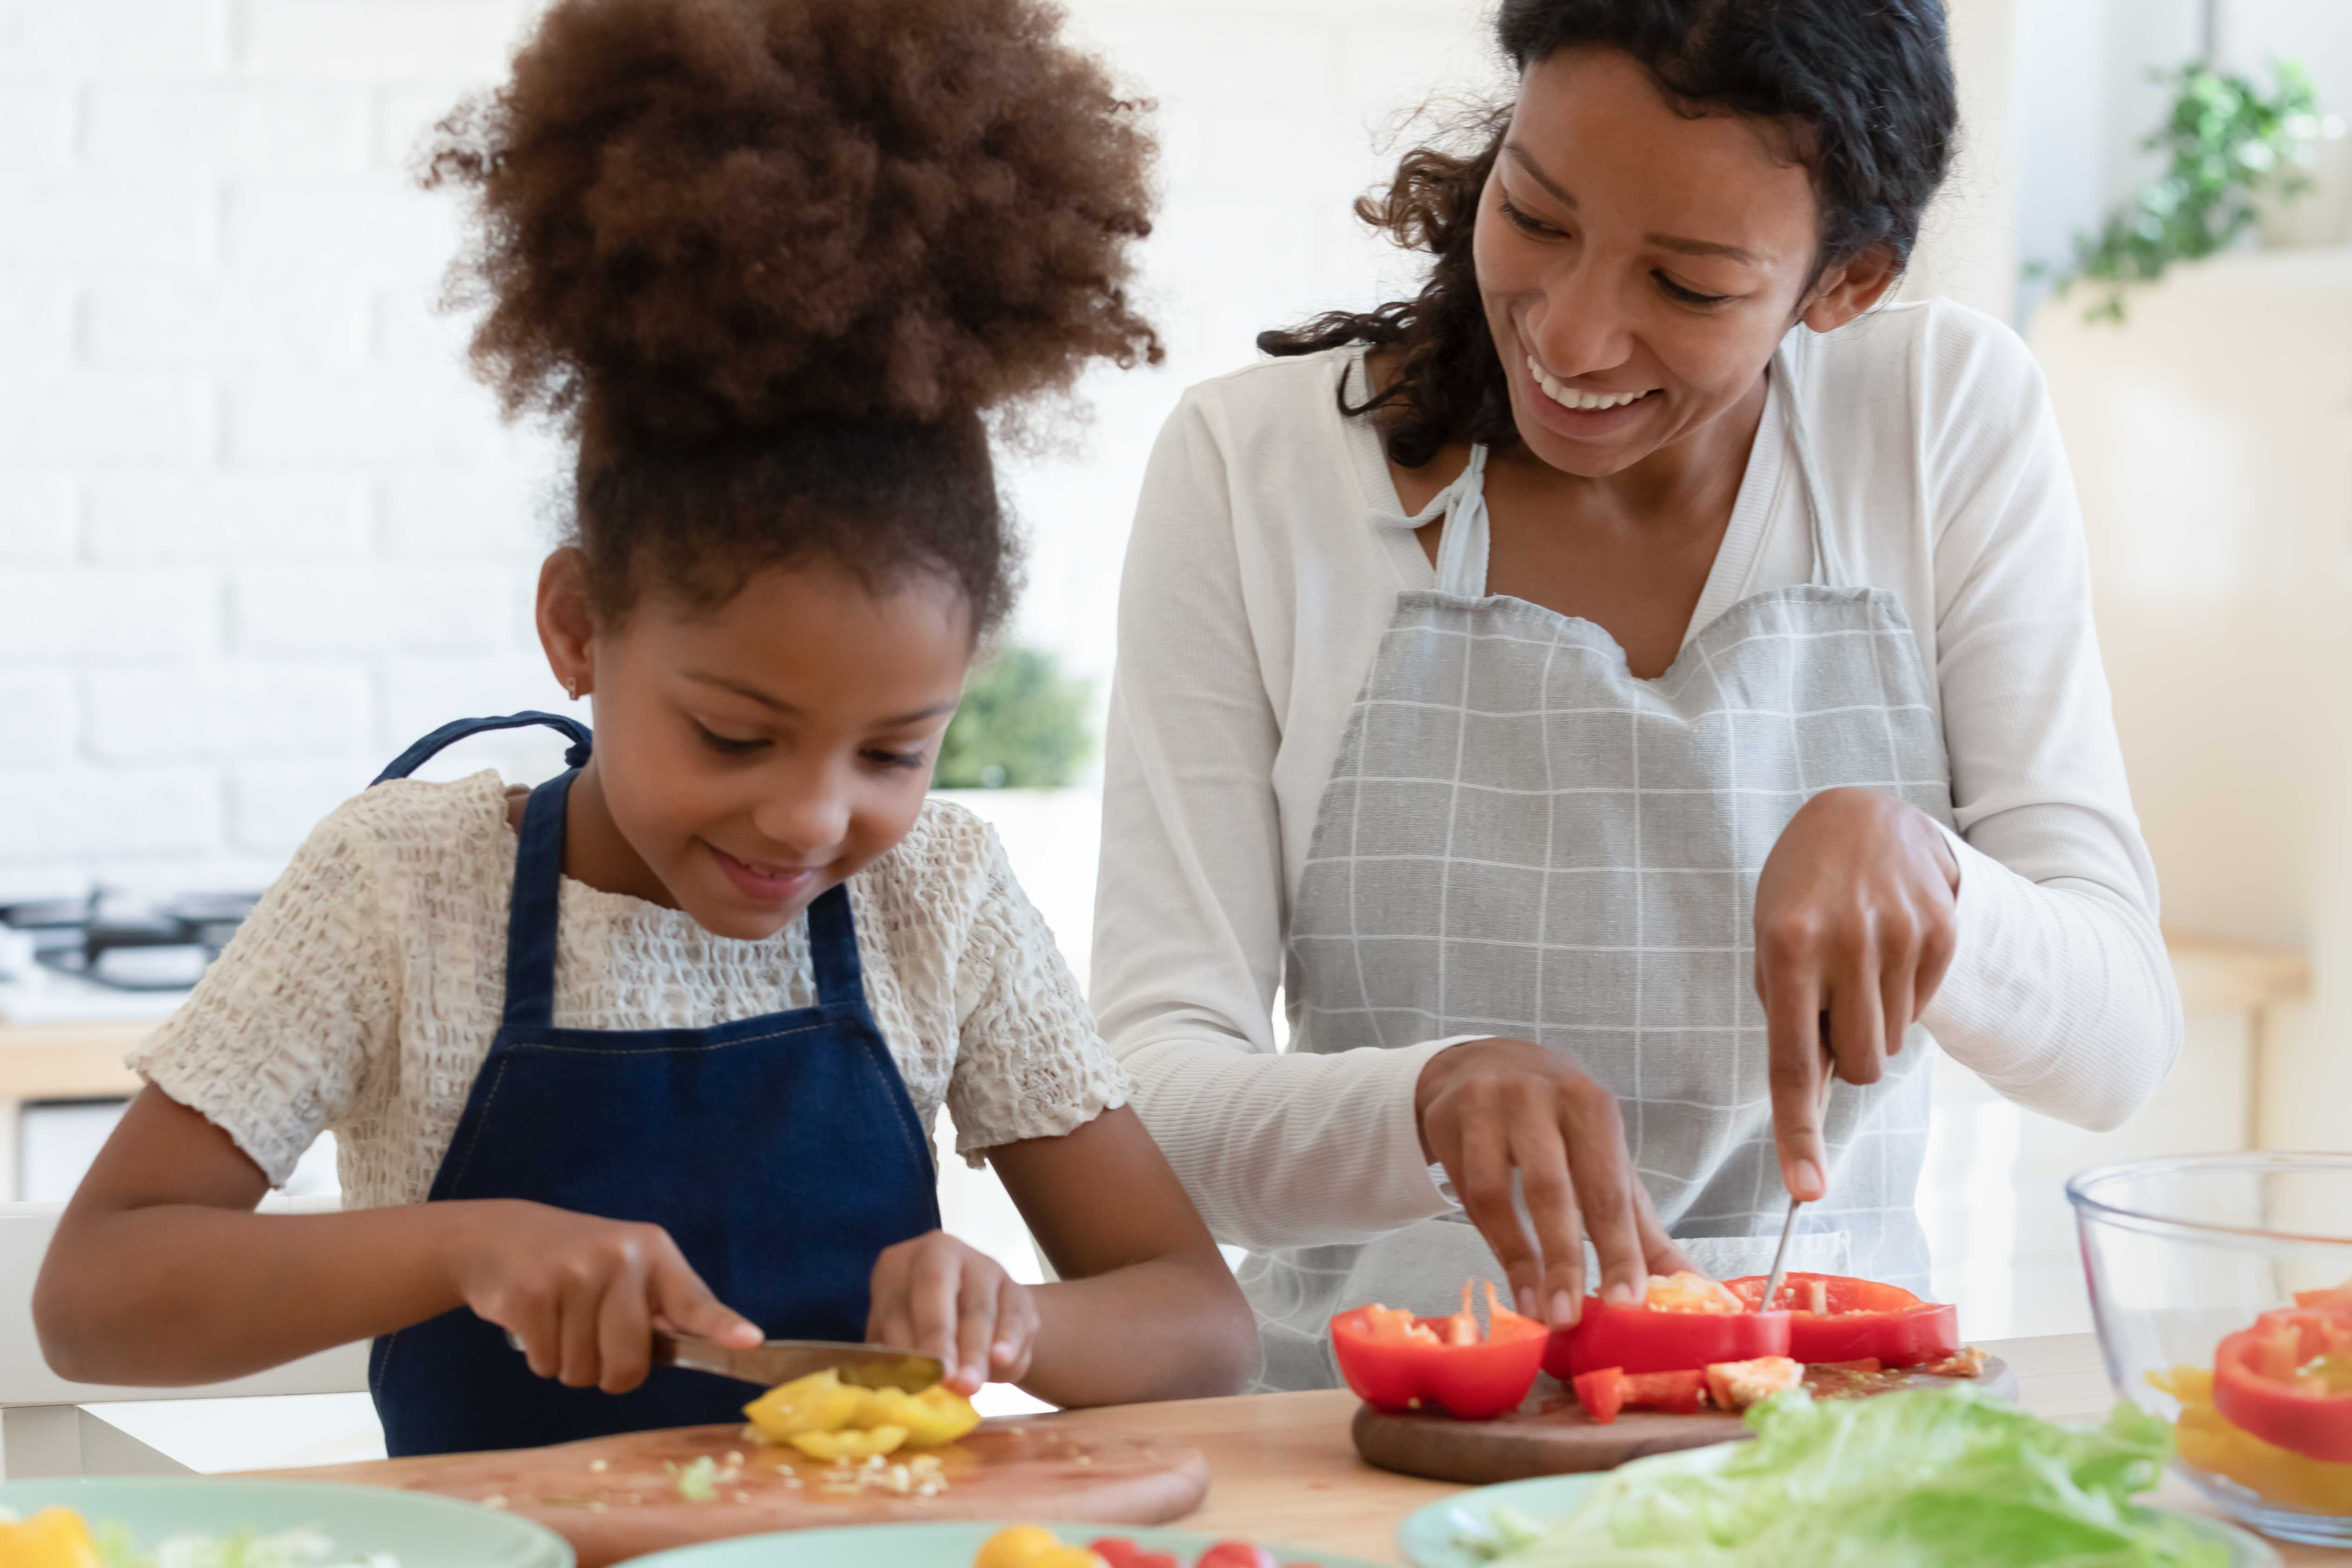 A child helping her mom cook